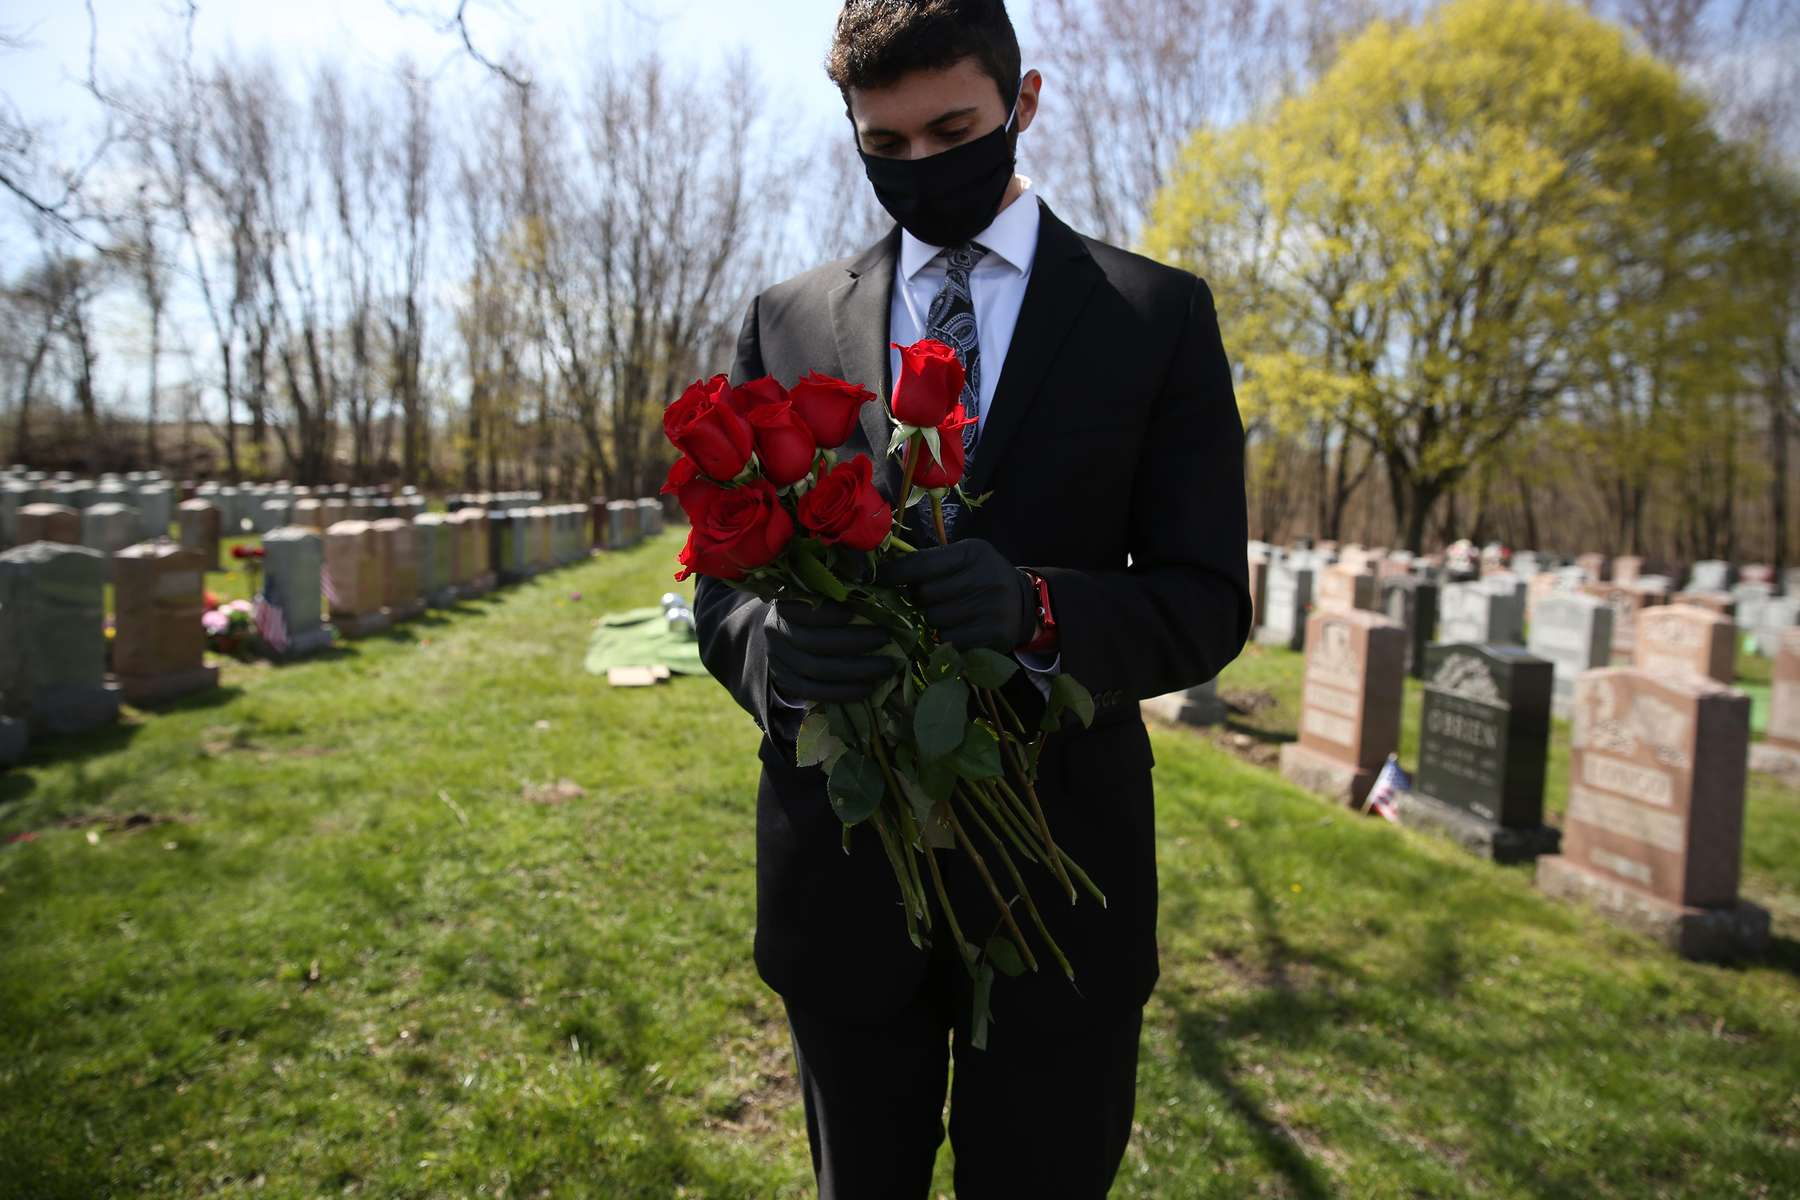 Malden, MA - 4/29/20 - Matt Tauro holds onto roses to give out to family members at Holy Cross Cemetery for Annette Nazzaro's funeral. Nazzaro, who lived to be 100, died of coronavirus or COVID-19. (Jessica Rinaldi/Globe Staff)